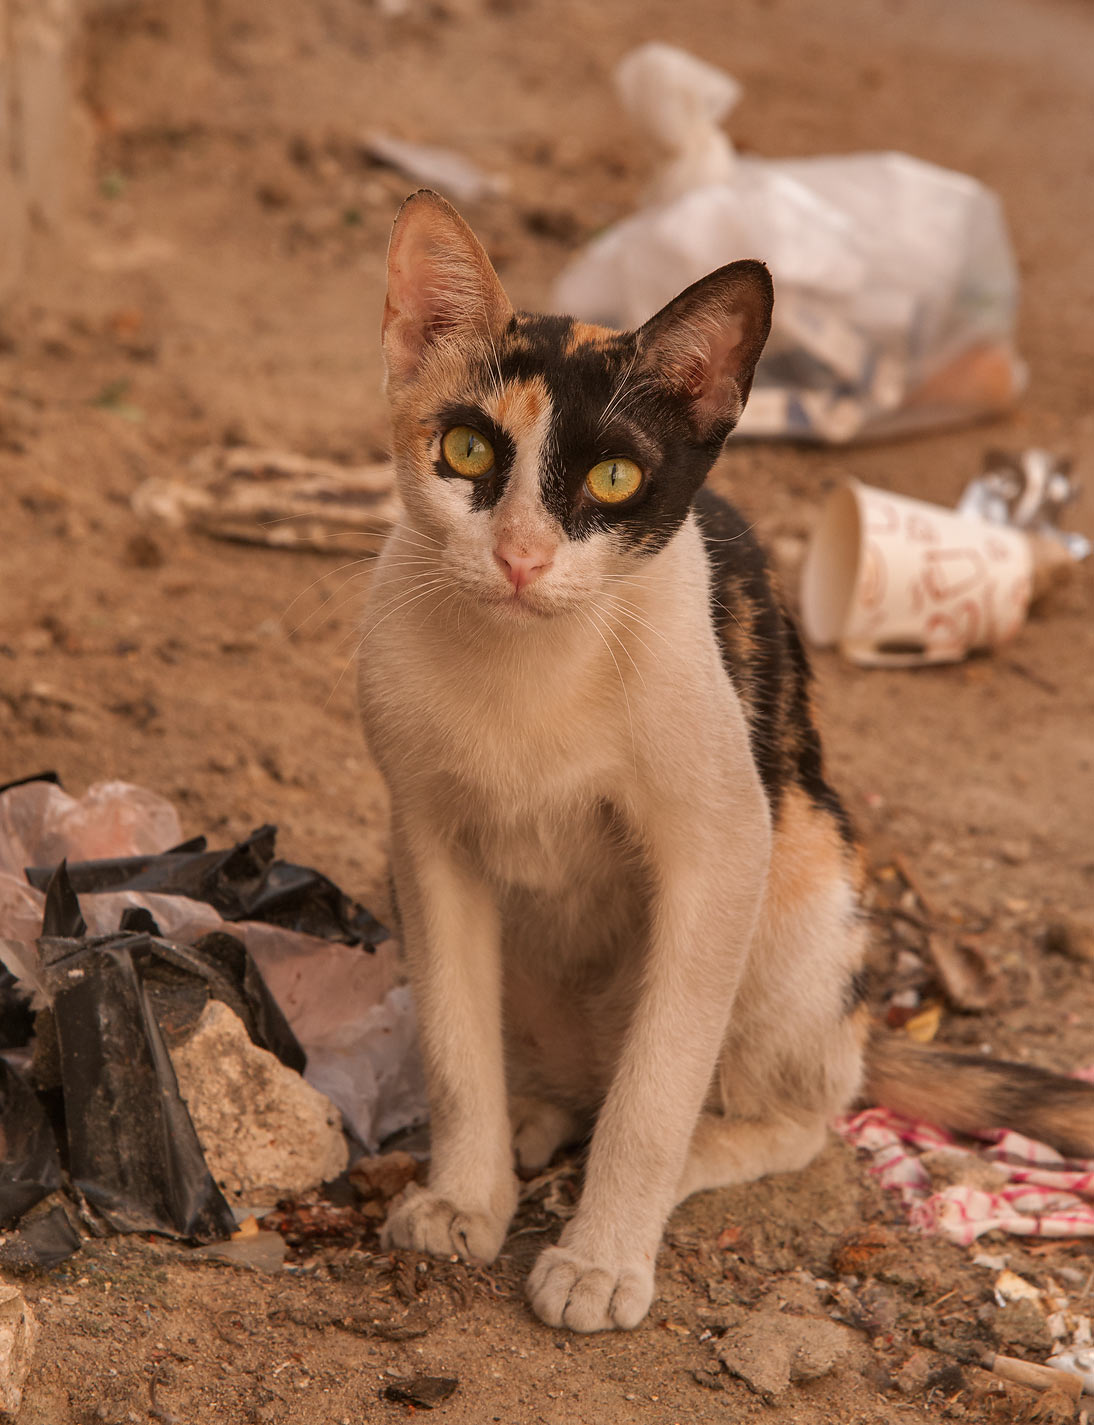 Calico cat sitting near Al Maymoun St., Musheirib area. Doha, Qatar